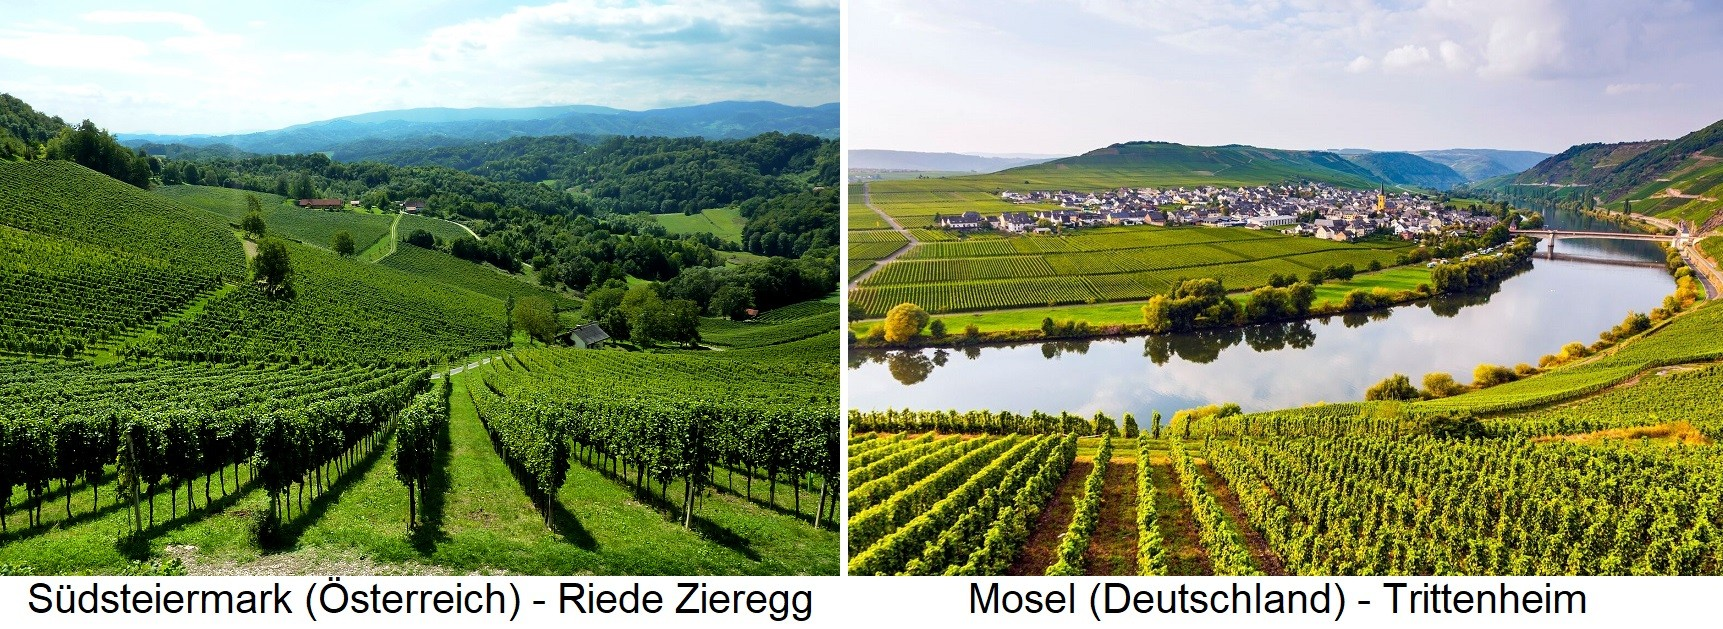 Winegrowing - South Styria Riede Zieregg and Mosel Trittenheim